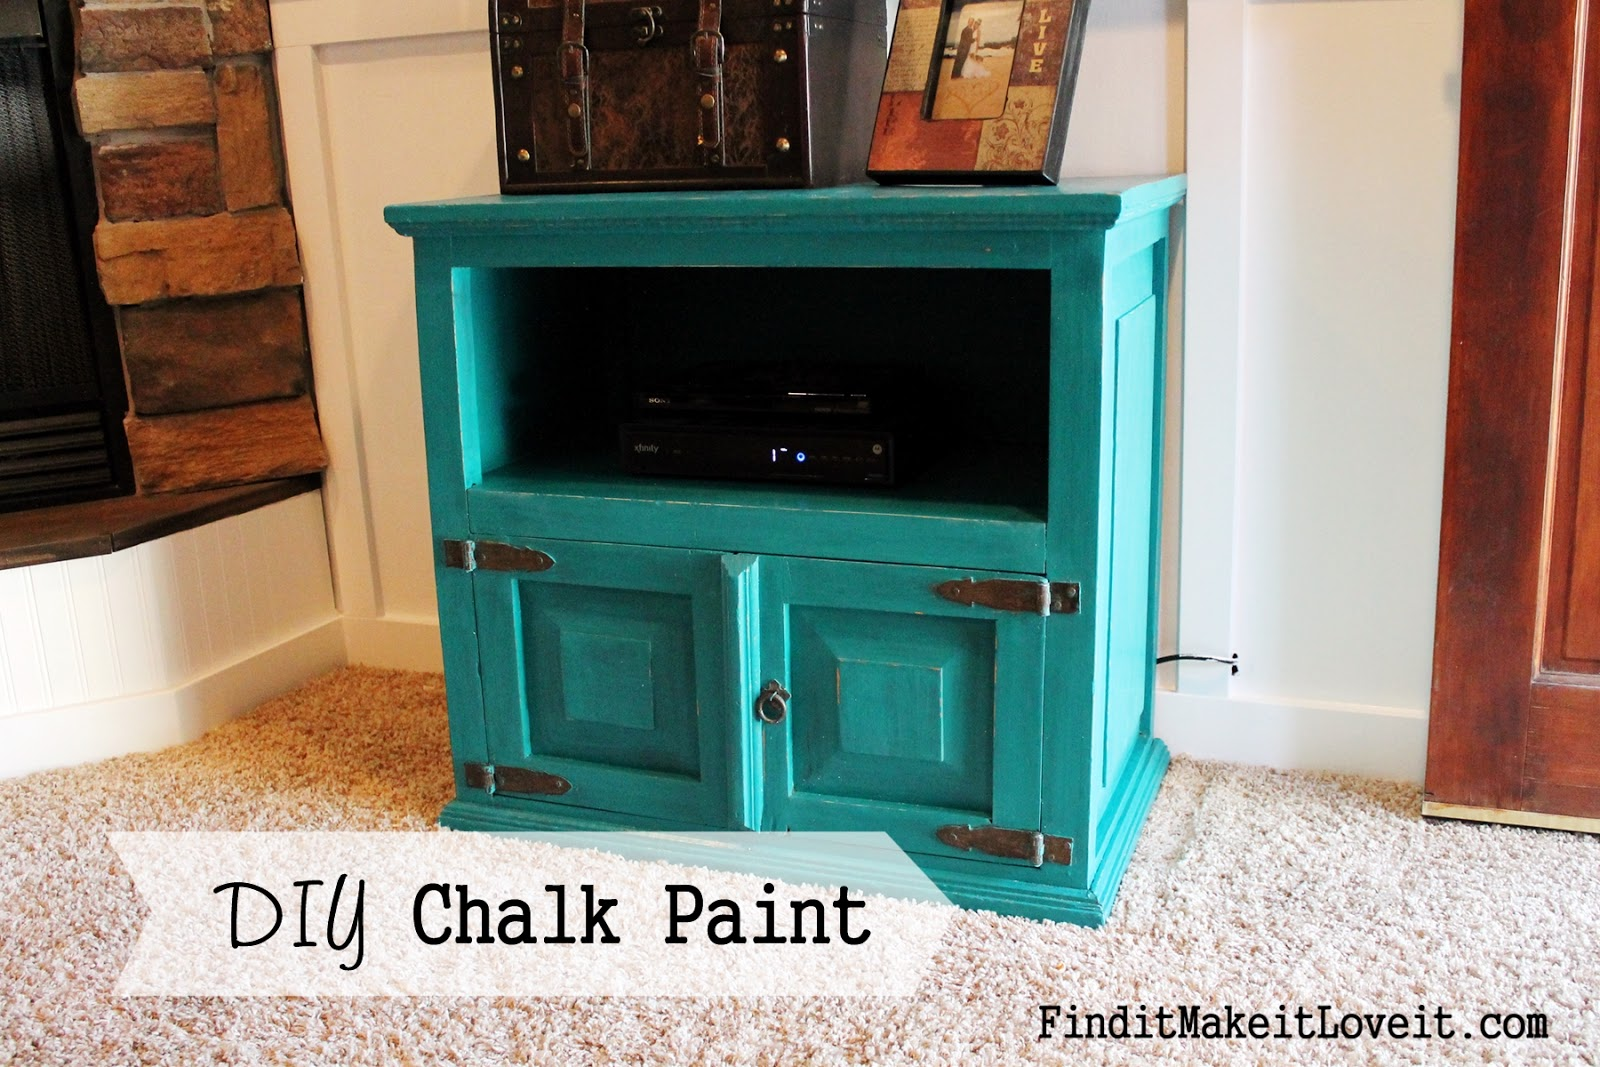 Diy chalk paint find it make it love it for Diy paint